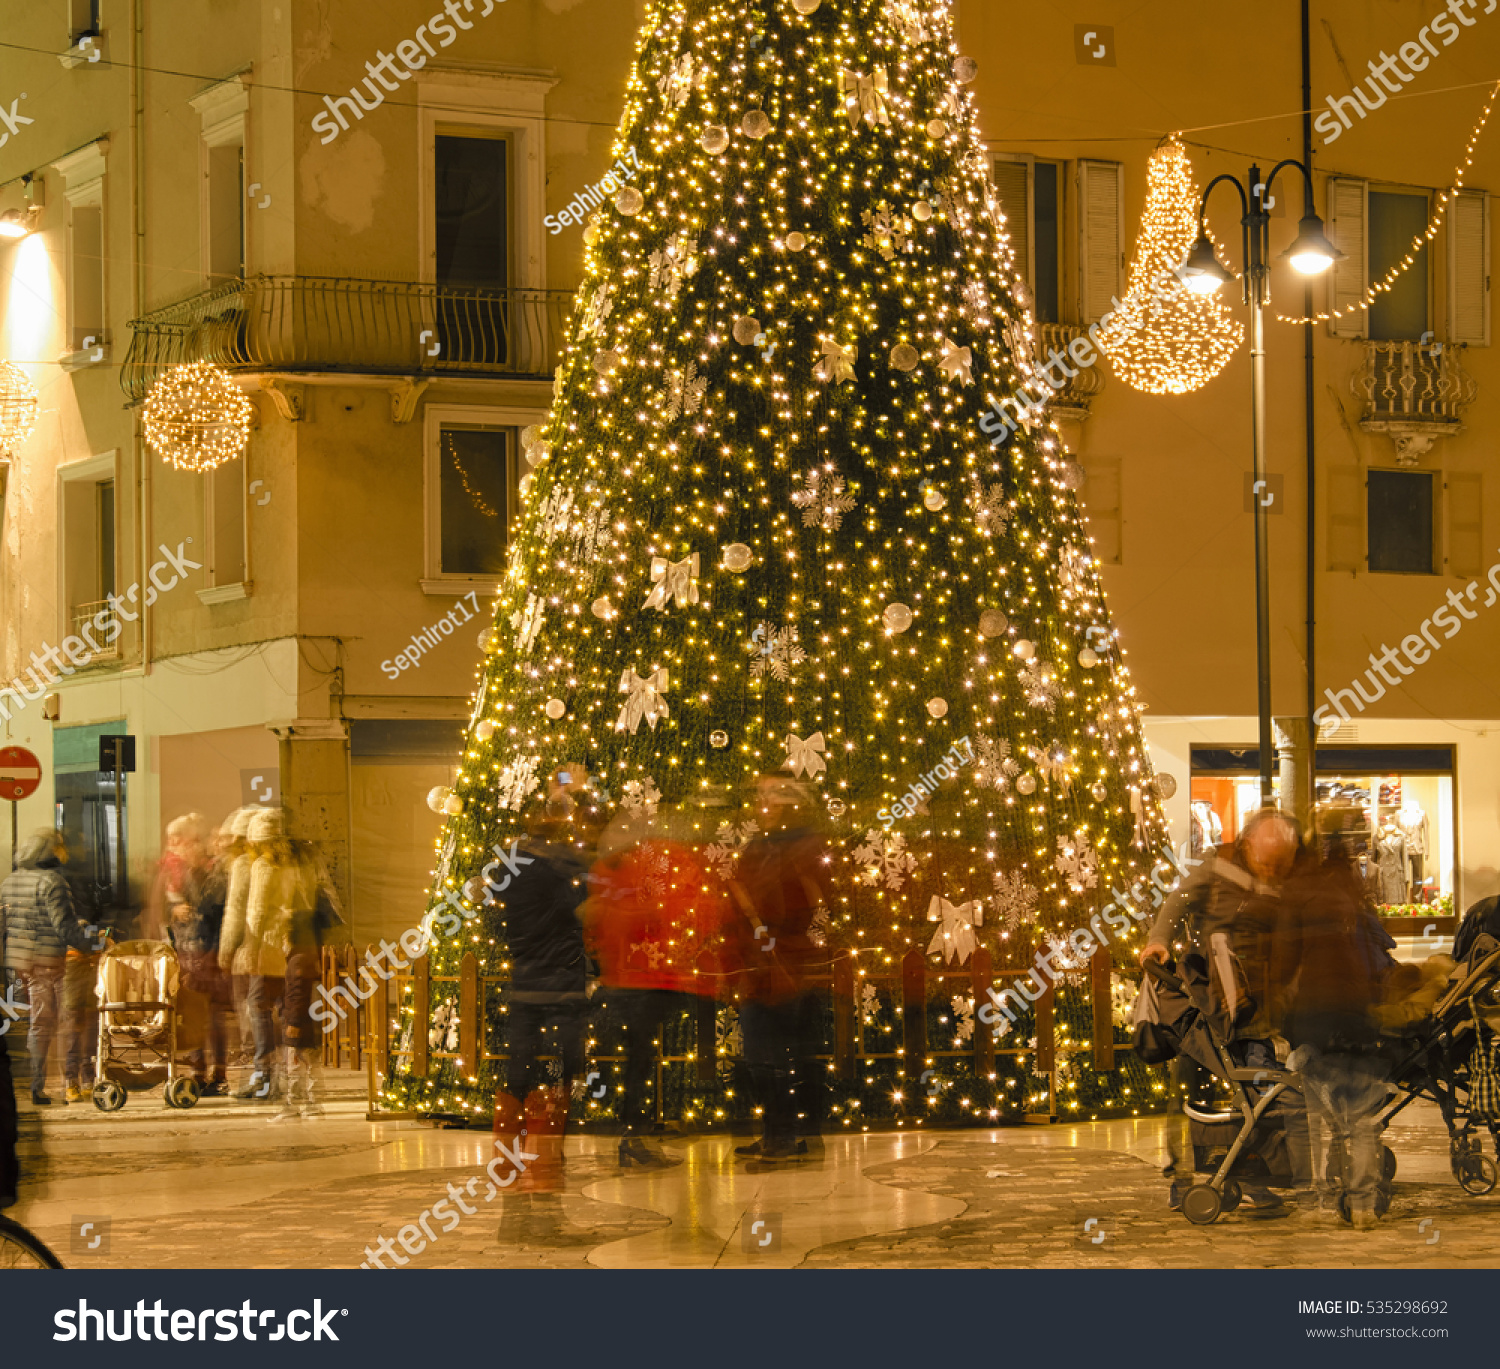 People Hunting Gifts Before Christmas Holidays Stock Photo (Edit Now ...